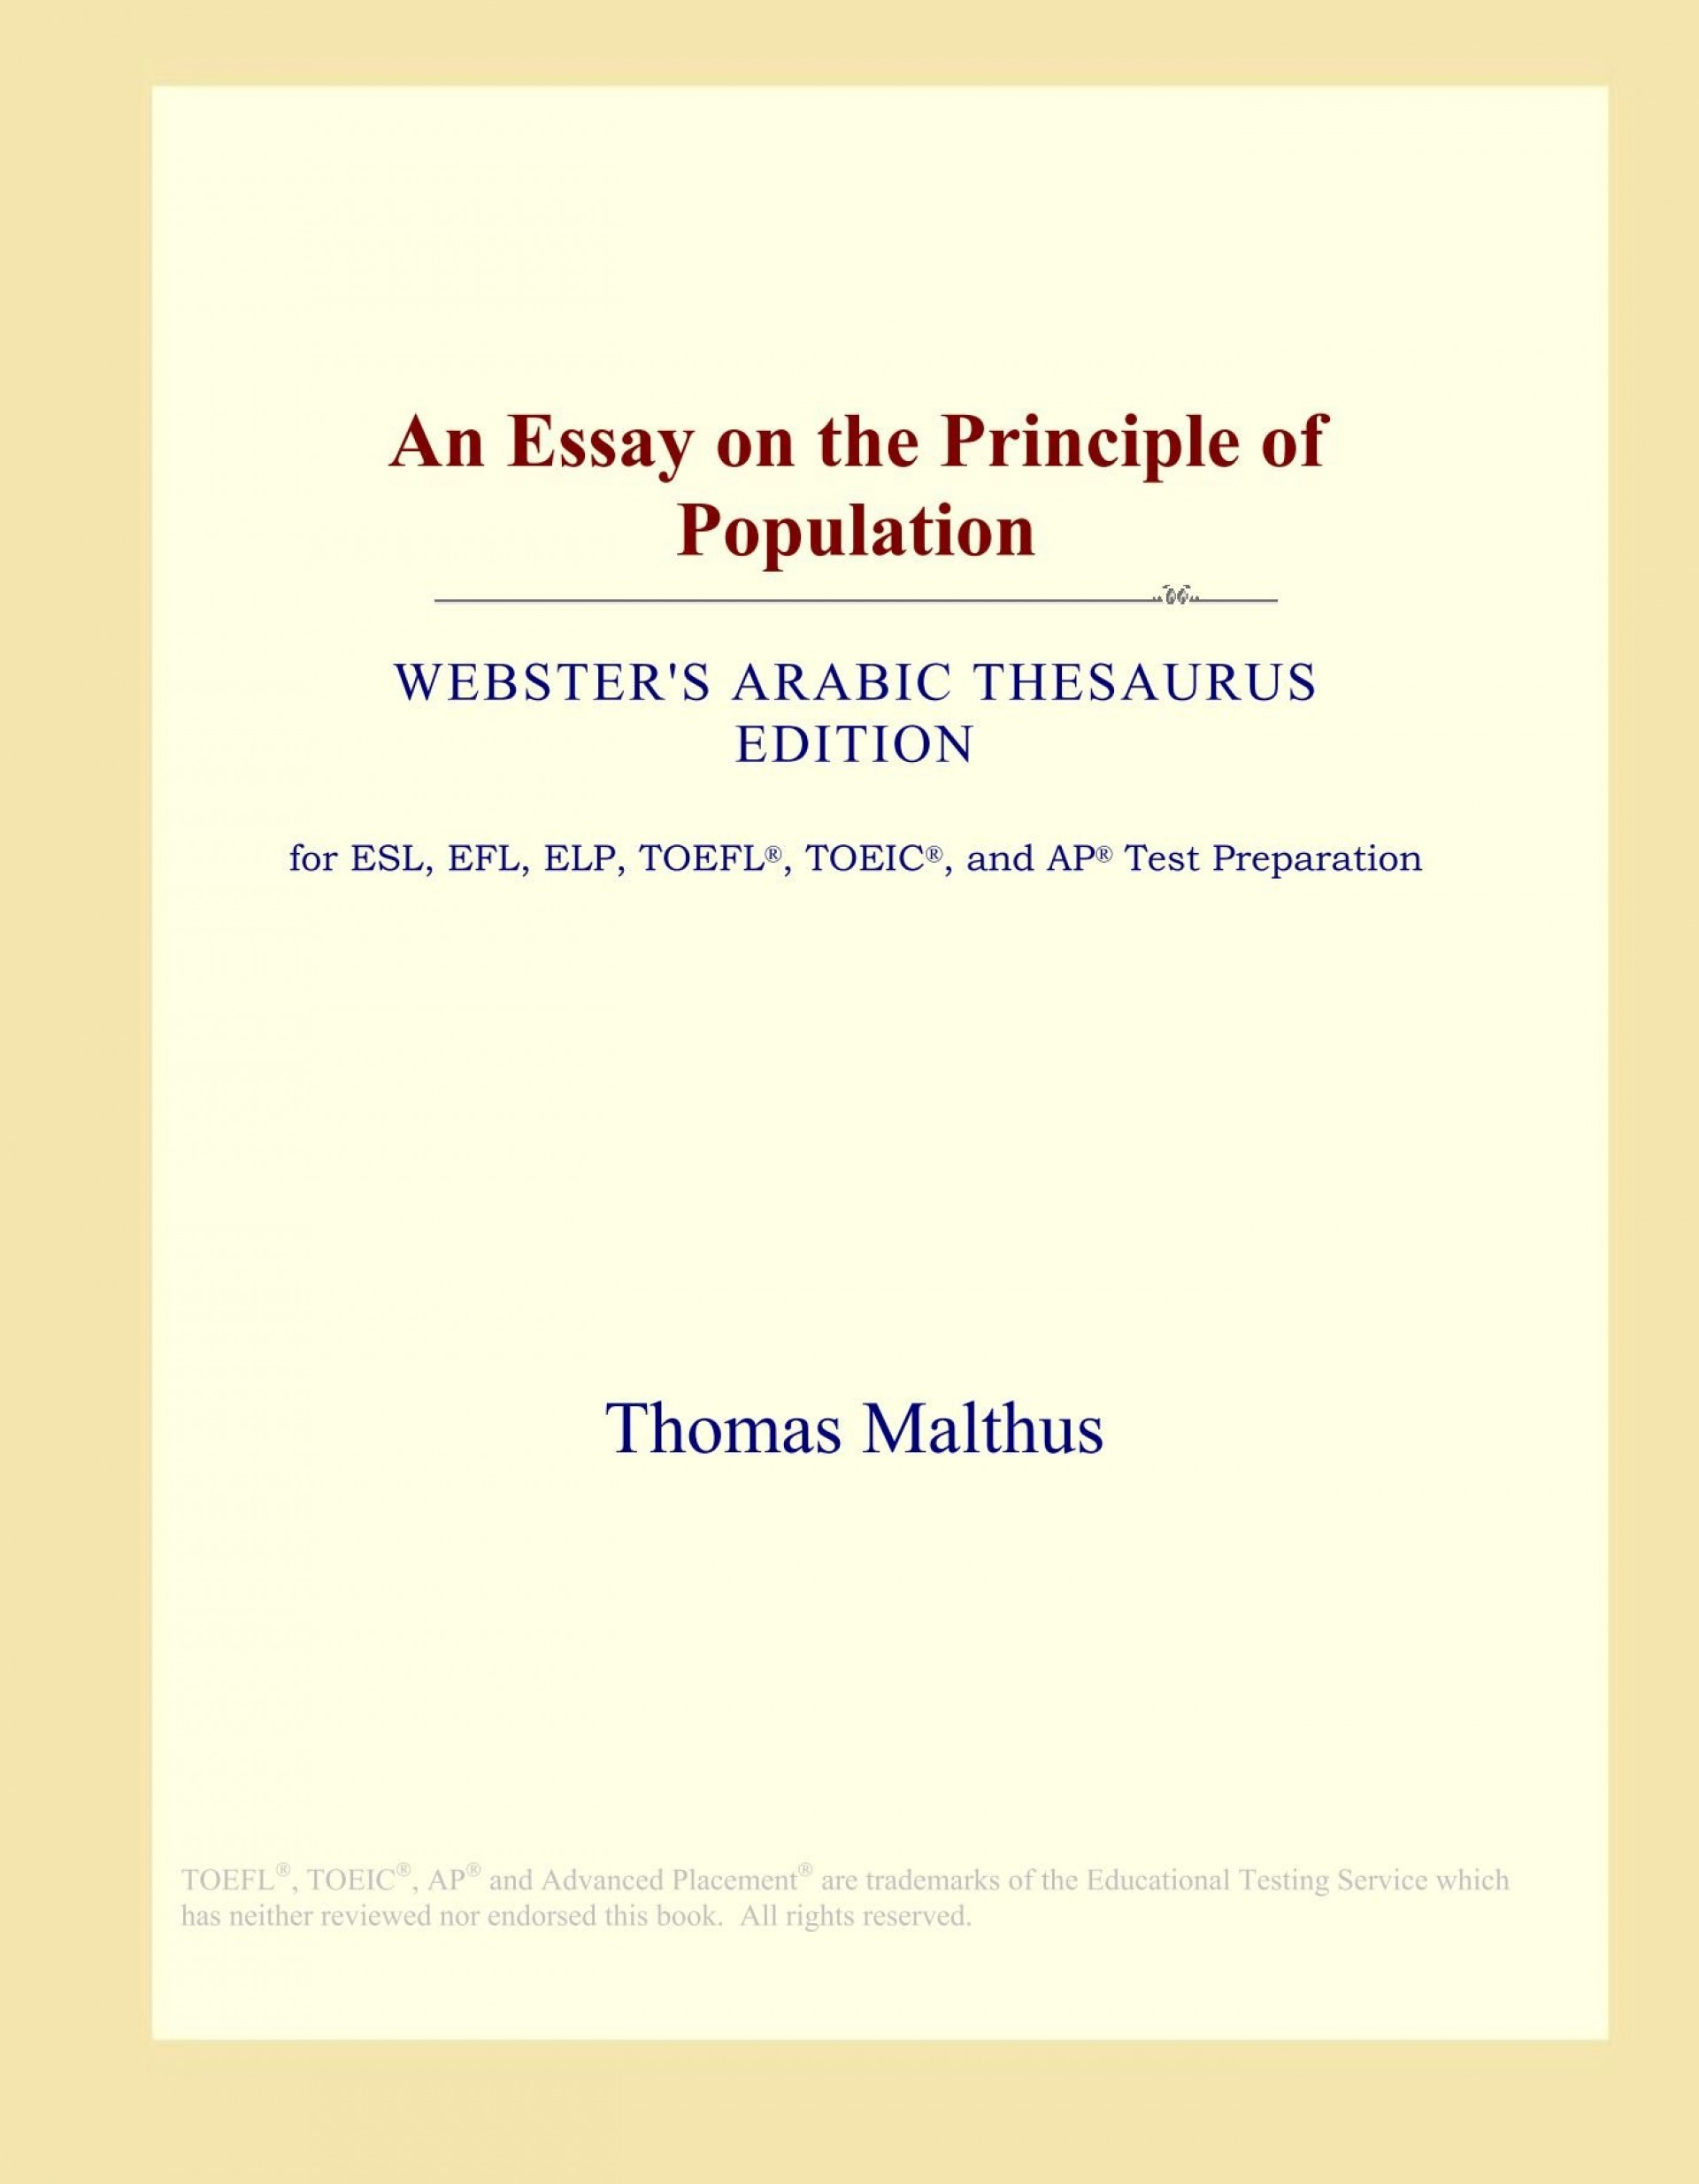 015 61groeunvgl Essay On The Principle Of Population Singular Thomas Malthus Sparknotes Advocated Ap Euro 1920